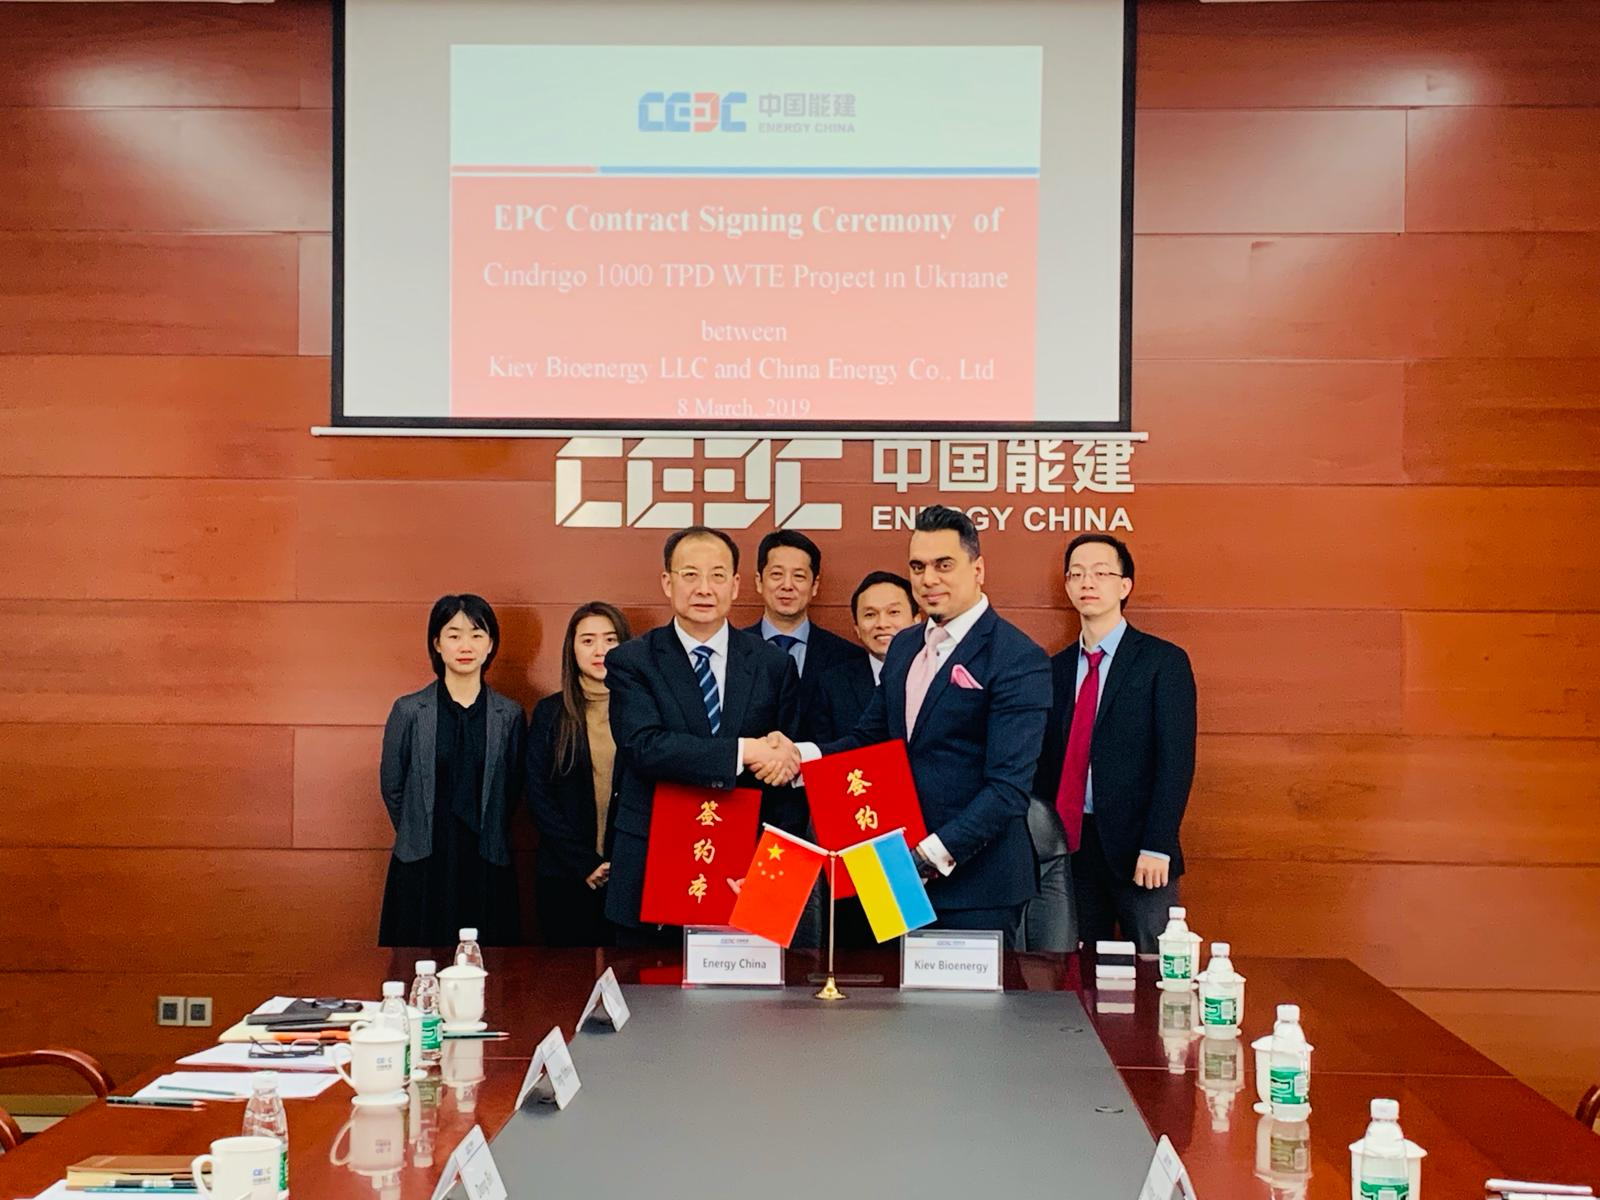 EPC contract signing between Cindrigo and China Energi